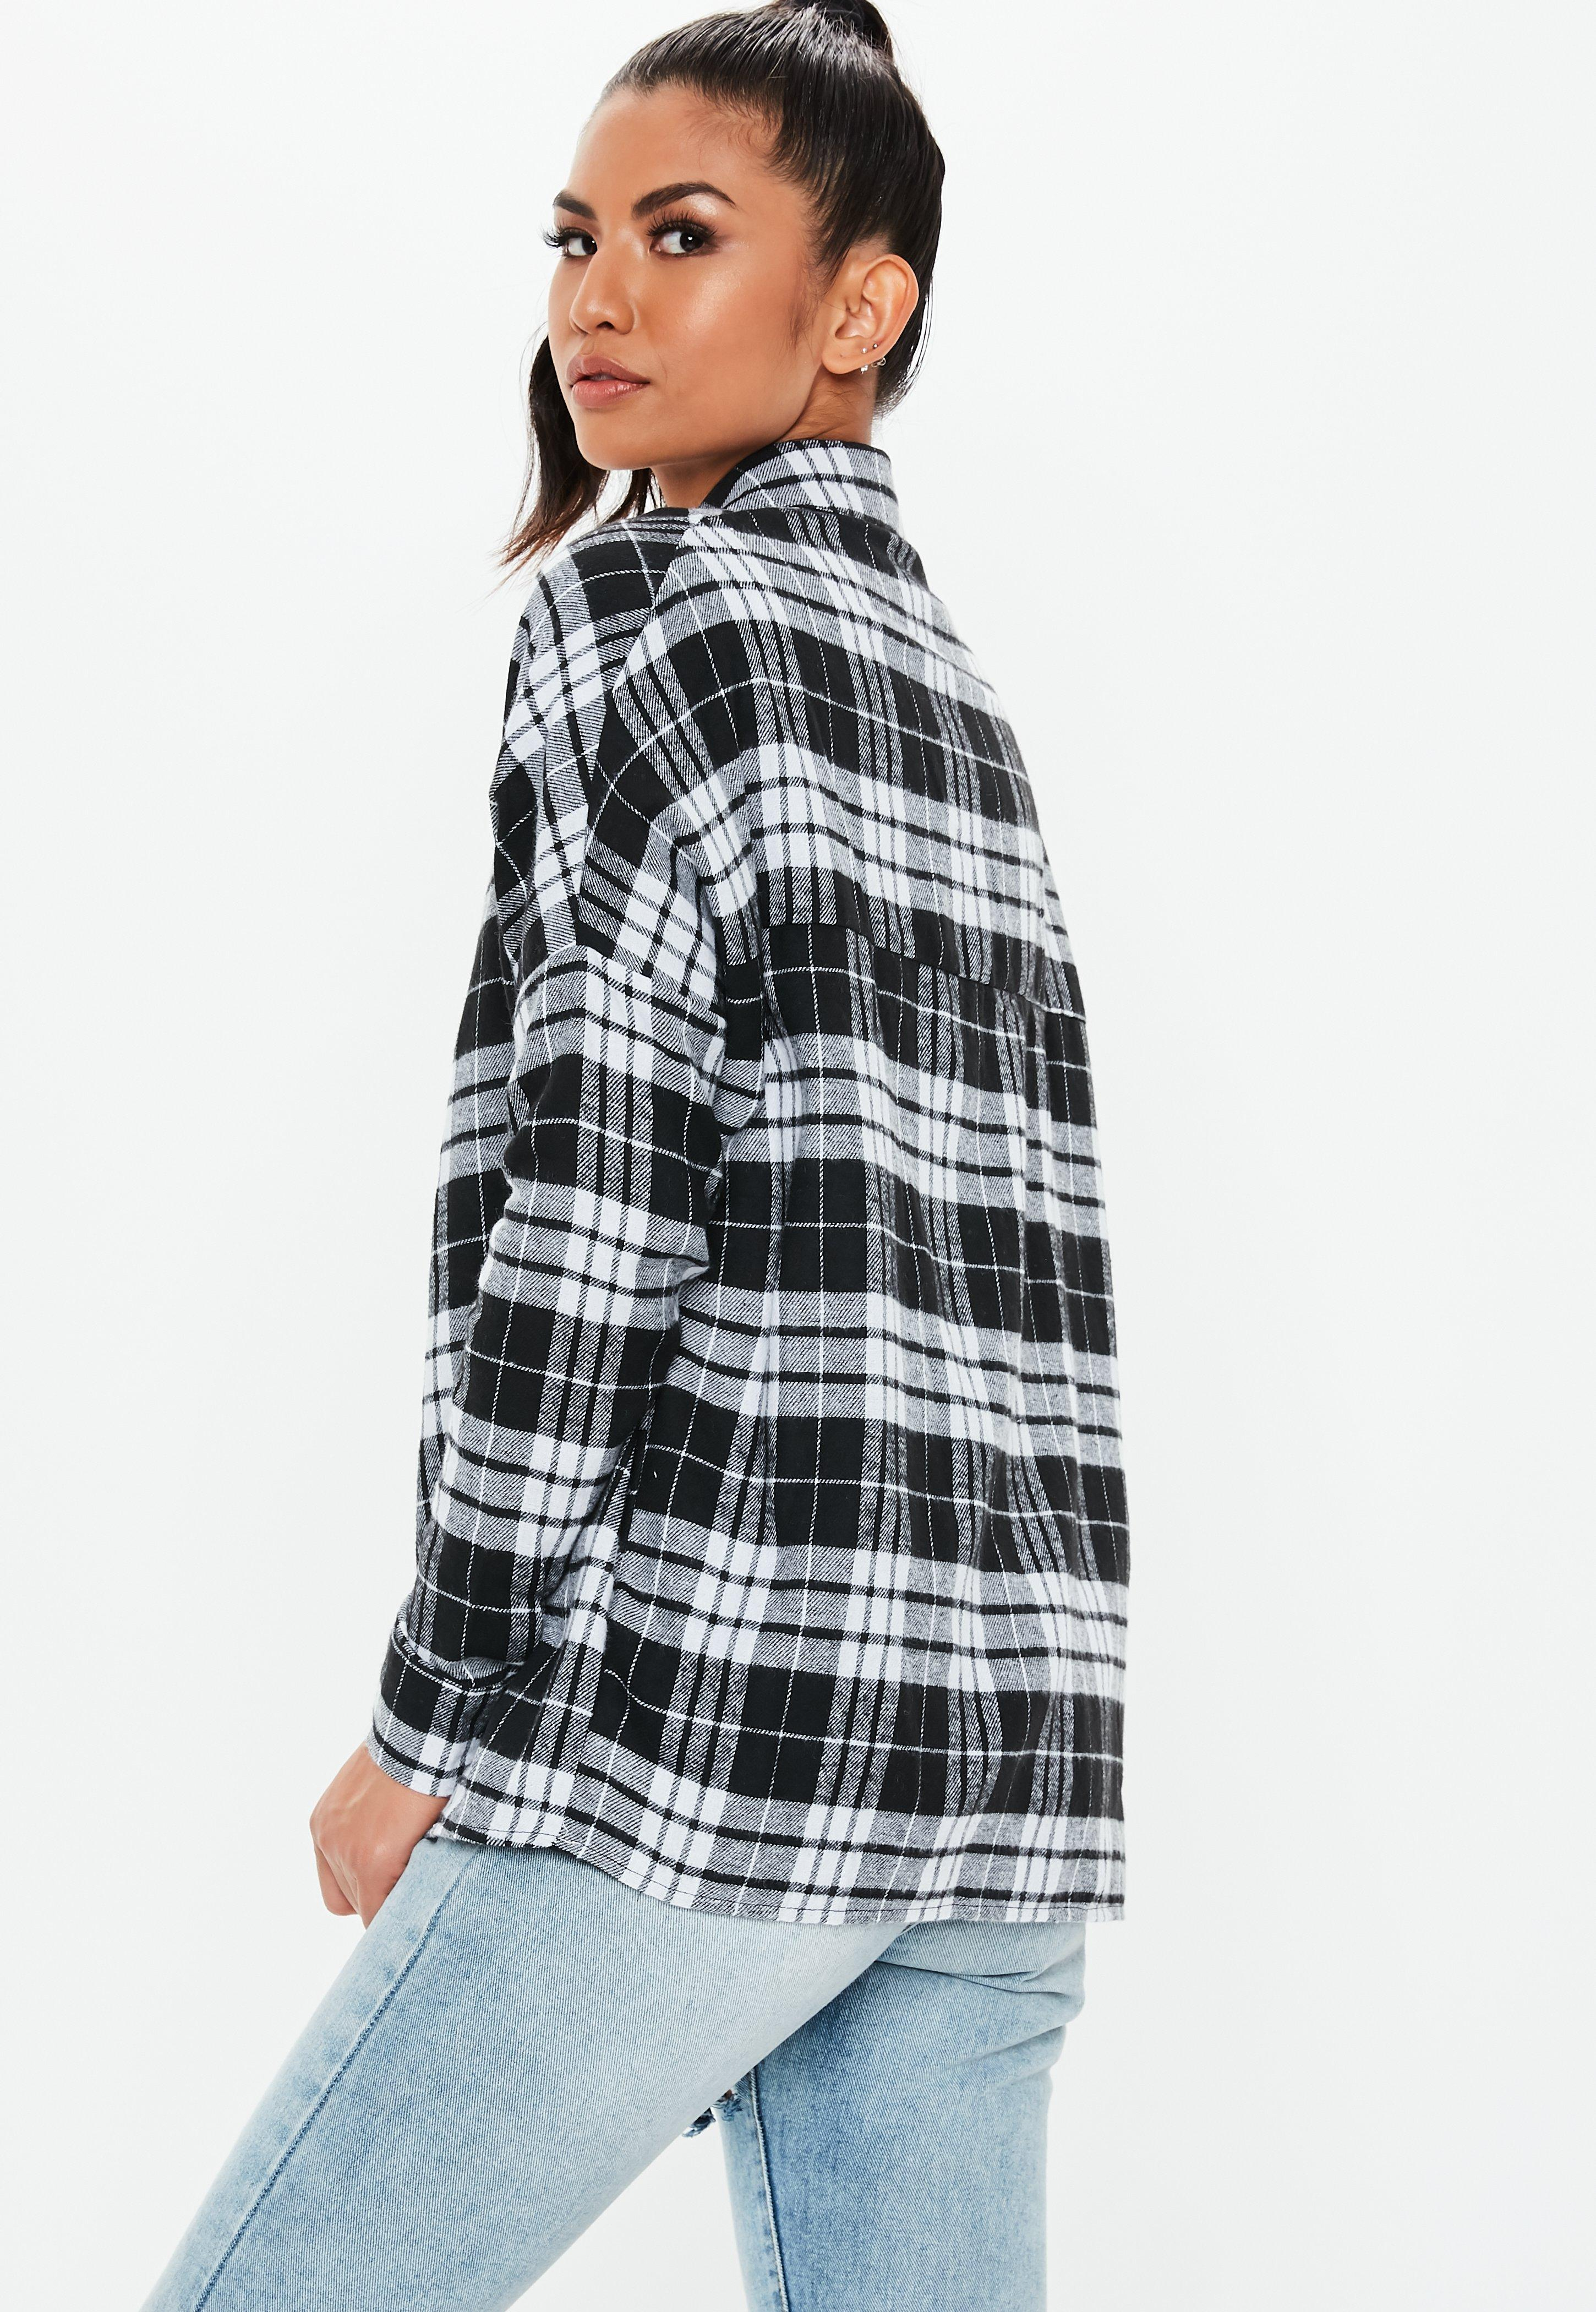 Free Shipping 100% Original Sale Order Missguided Black Checked Shirt Clearance Original Cheap How Much Sale New Arrival nEU9o